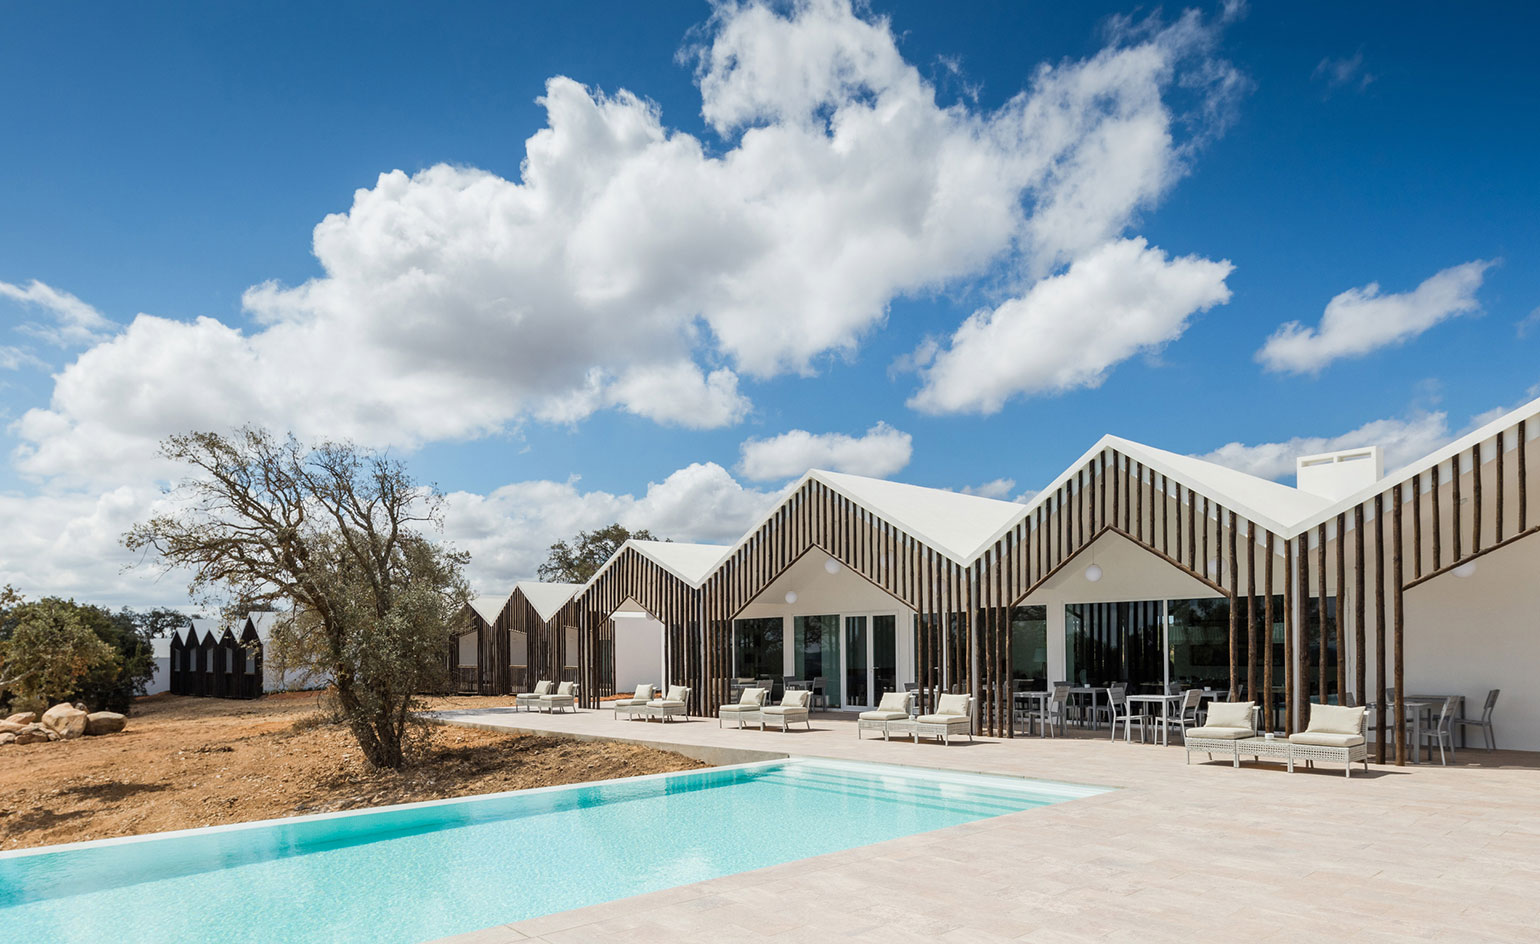 Sobreiras Alentejo Country Hotel Review Grandola